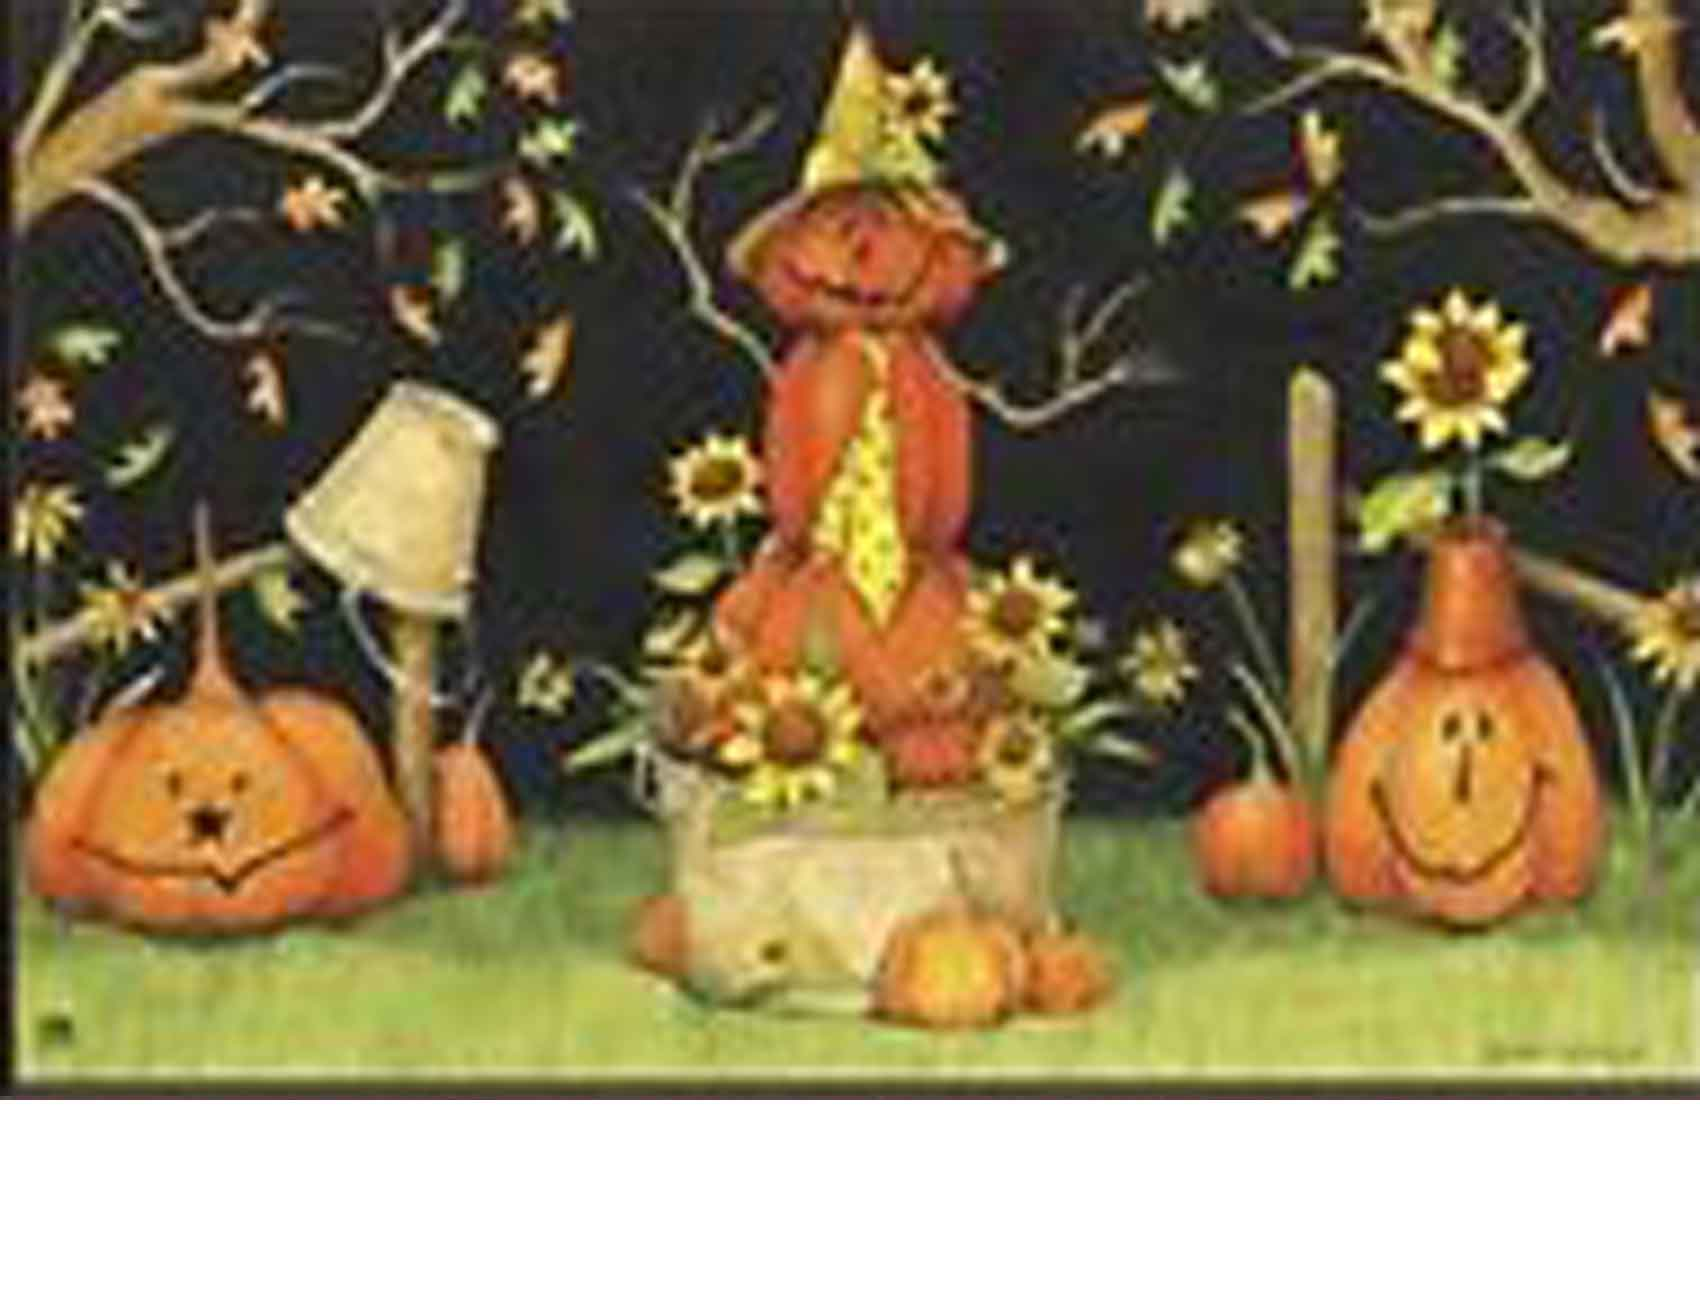 Indoor & Outdoor Mr Scarecrow MatMate Doormat - 18x30